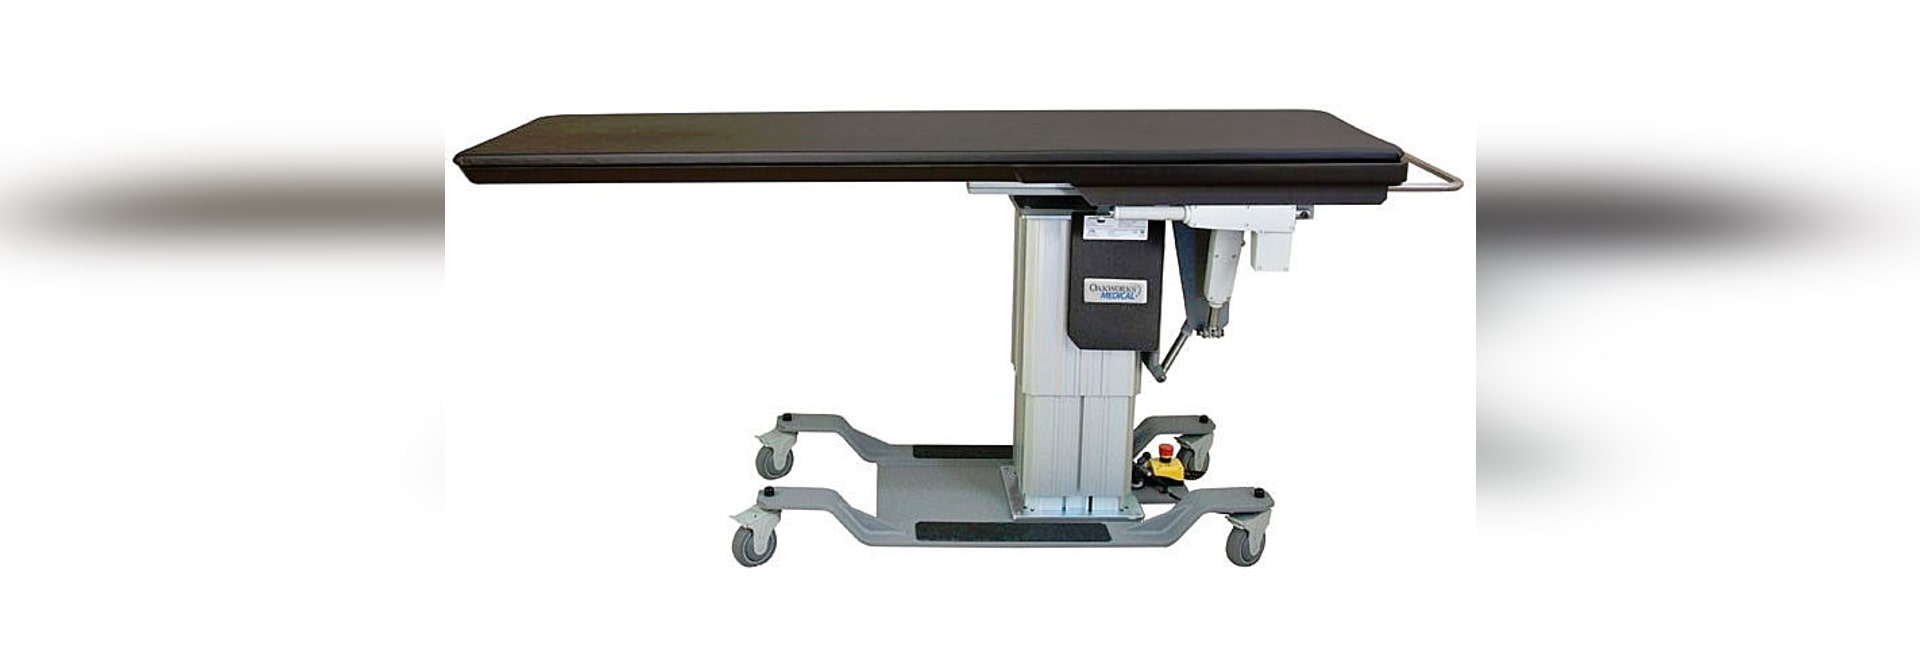 CFPMB301 by Oakworks Medical - Bariatric, tilting and motorized  C-arm table